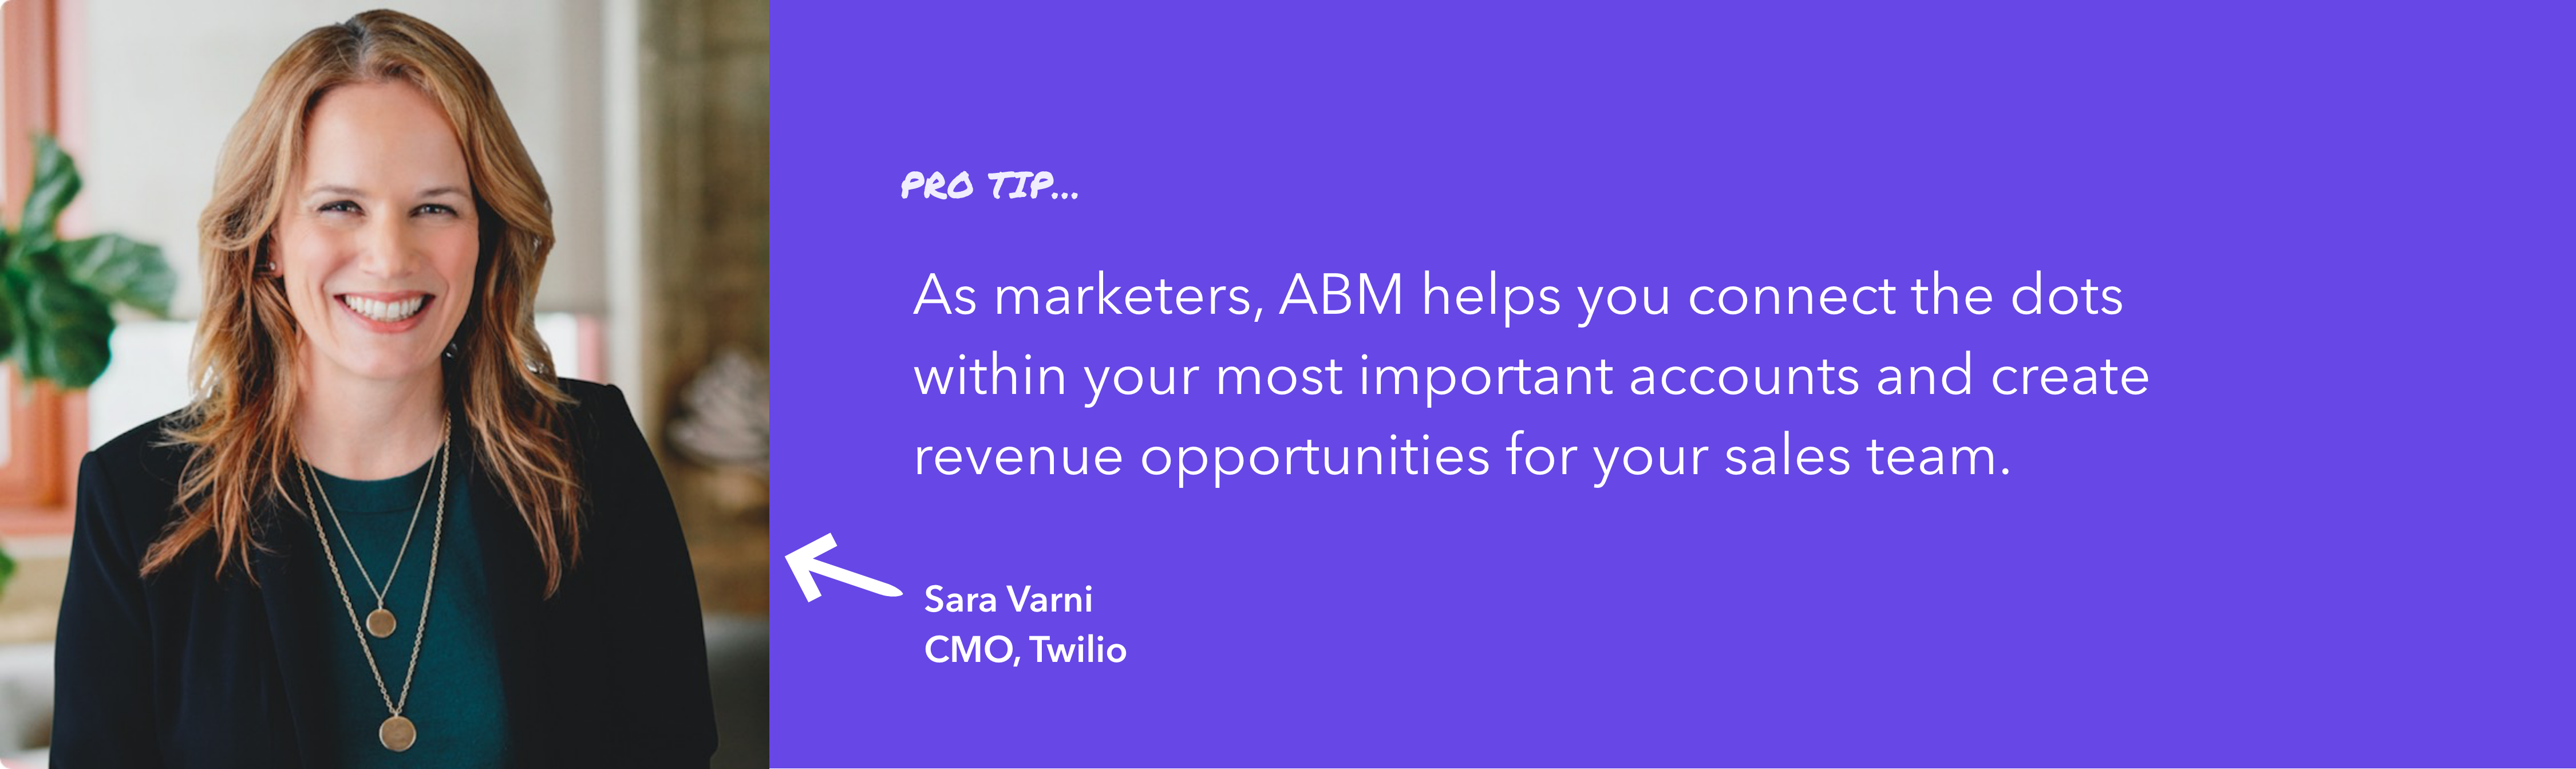 Sara Varni, CMO at Twilio, shares the value of doing ABM